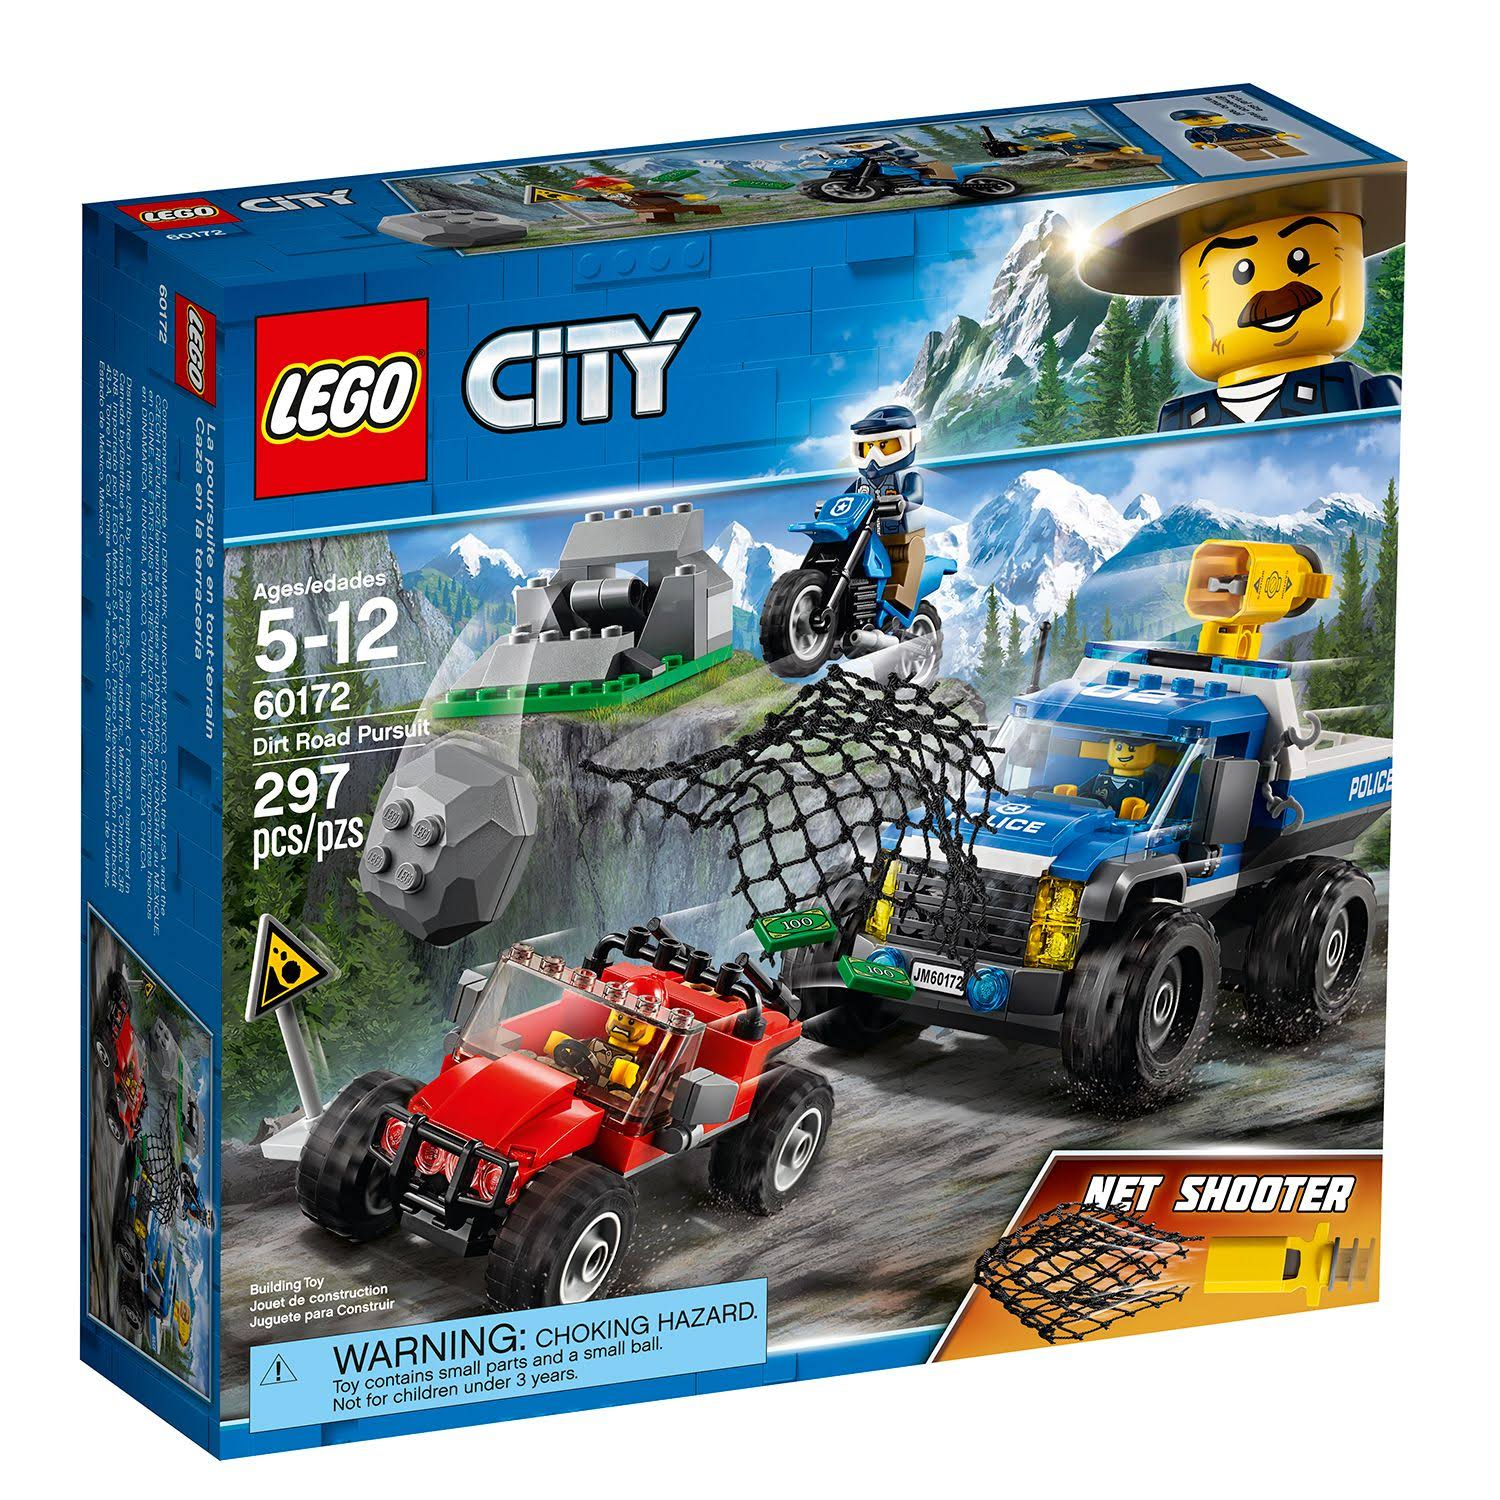 Lego City 60172 Police Dirt Road Pursuit - 297 Pieces